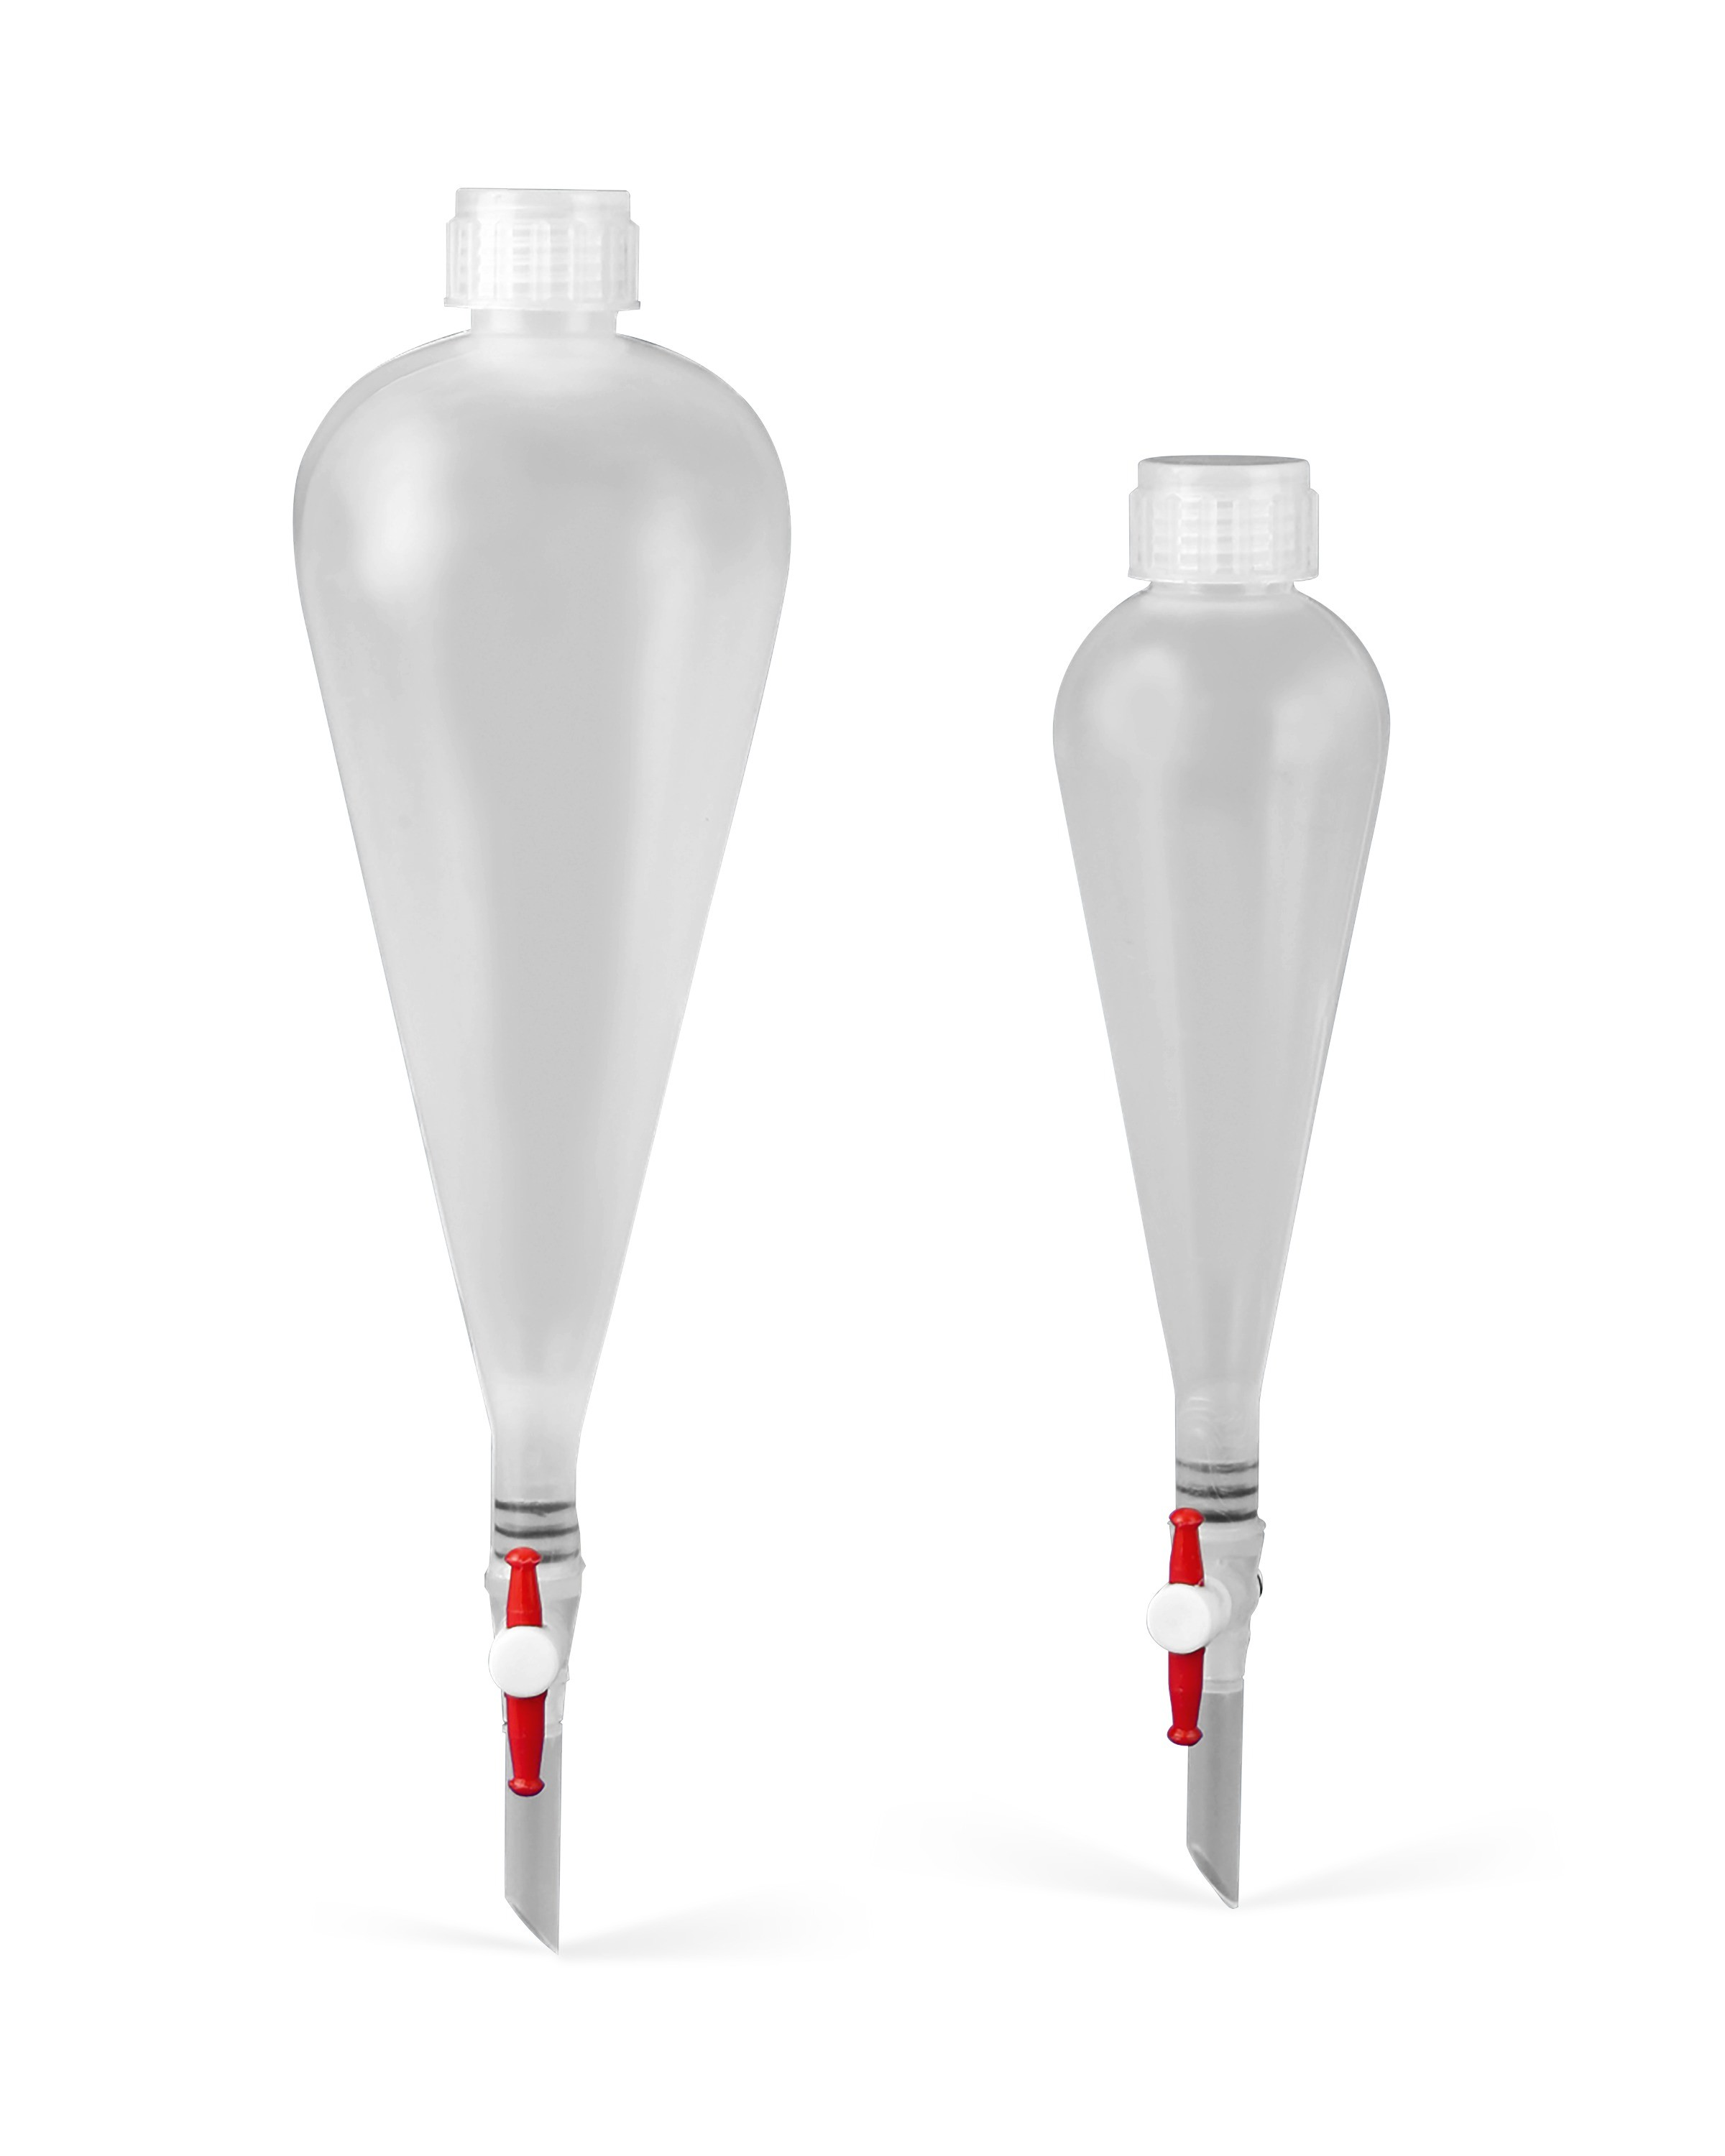 Squibb Pear-Shaped Separatory Funnels